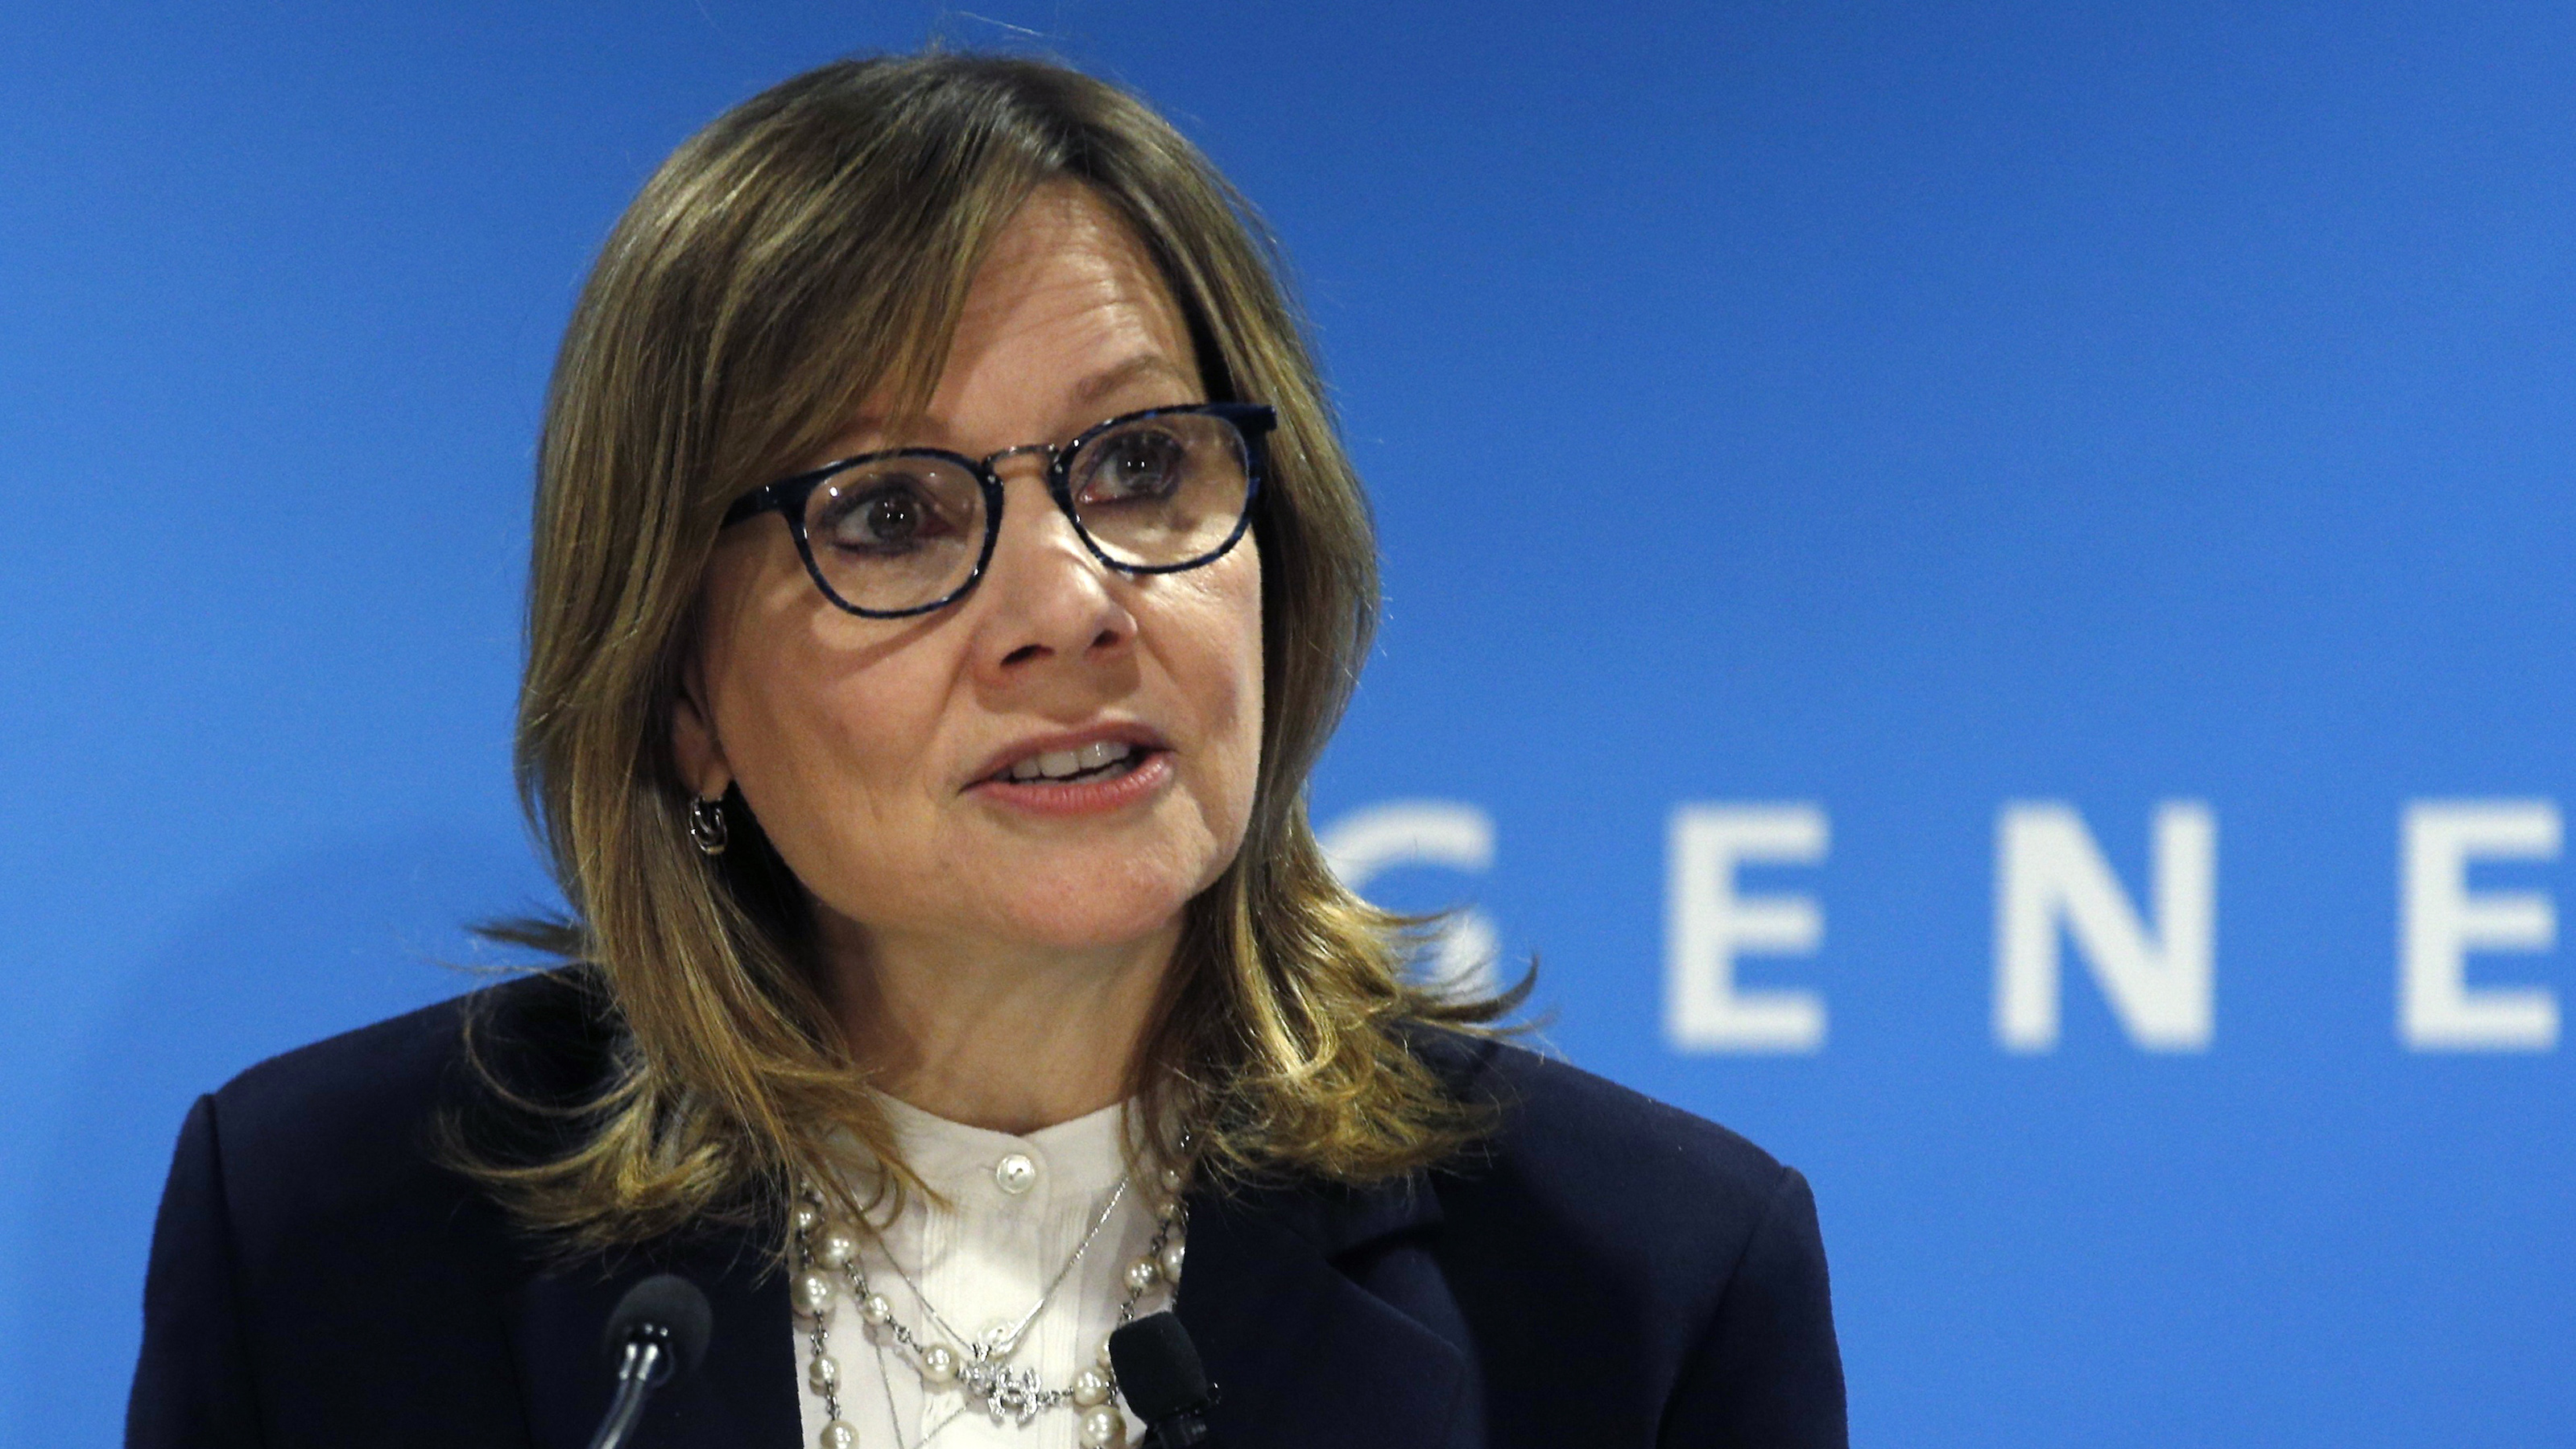 10 Fast Facts on Mary Barra, CEO of General Motors